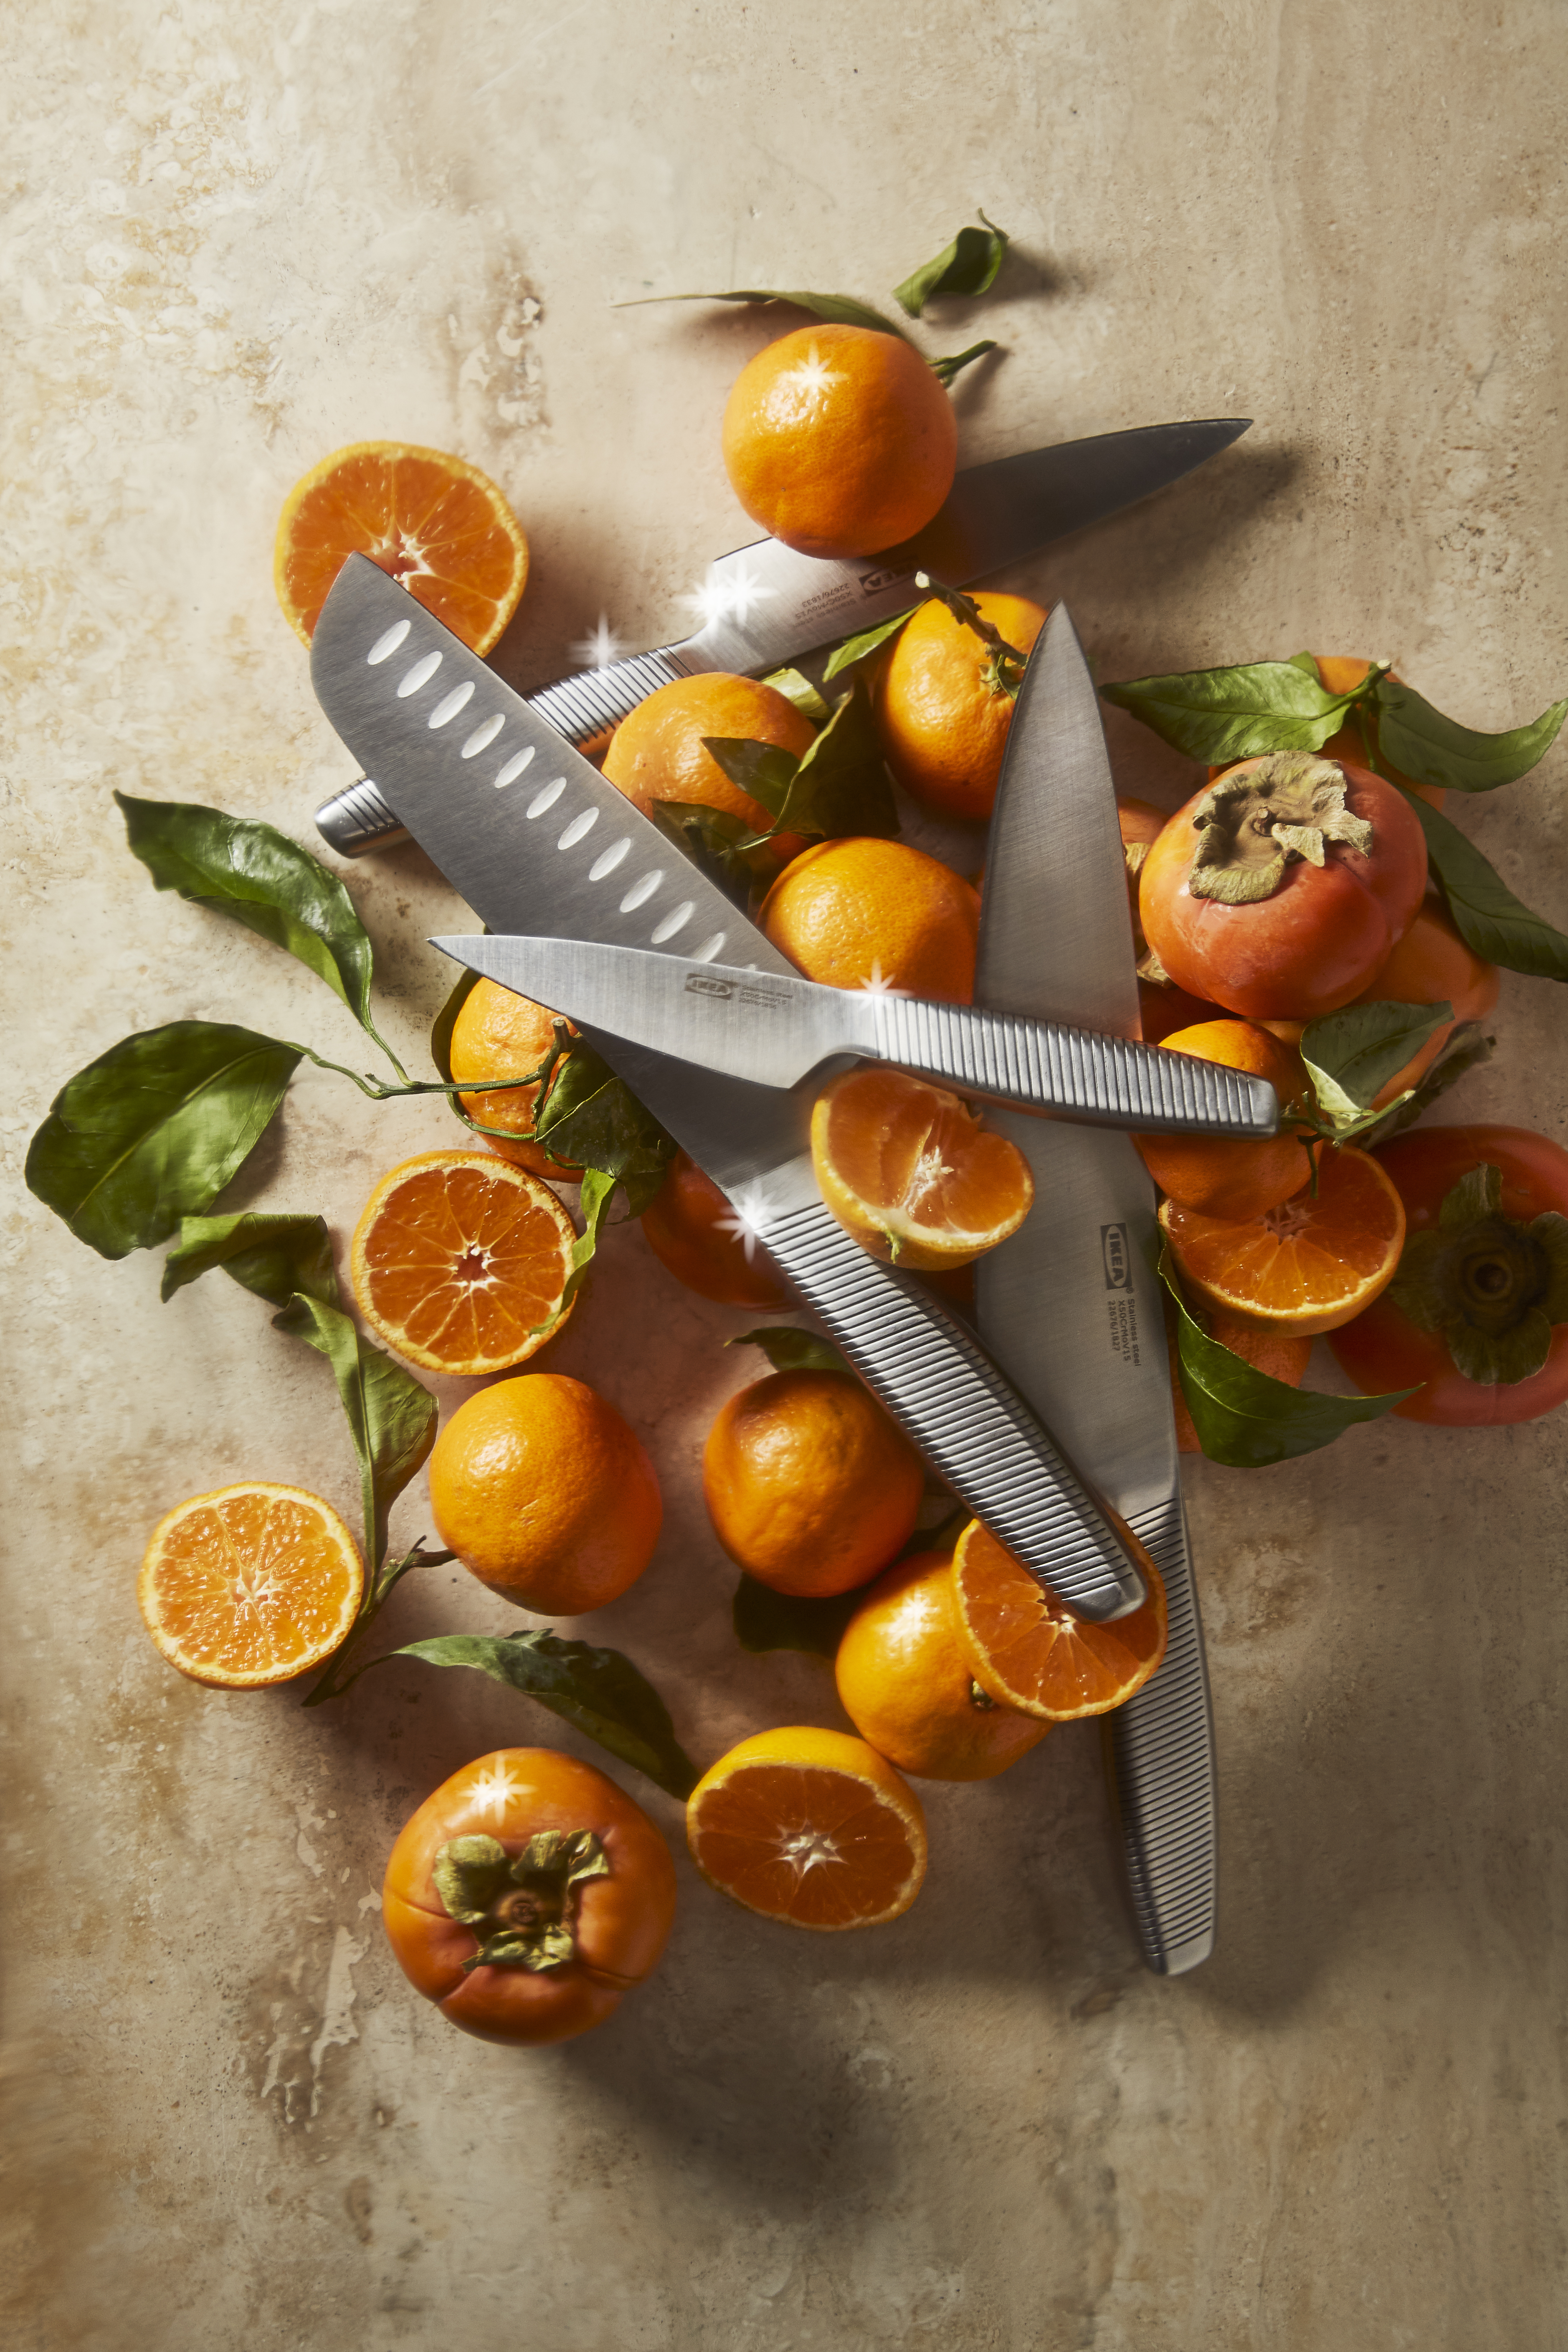 Hilary_McMullen_Ikea_knives_11141915118